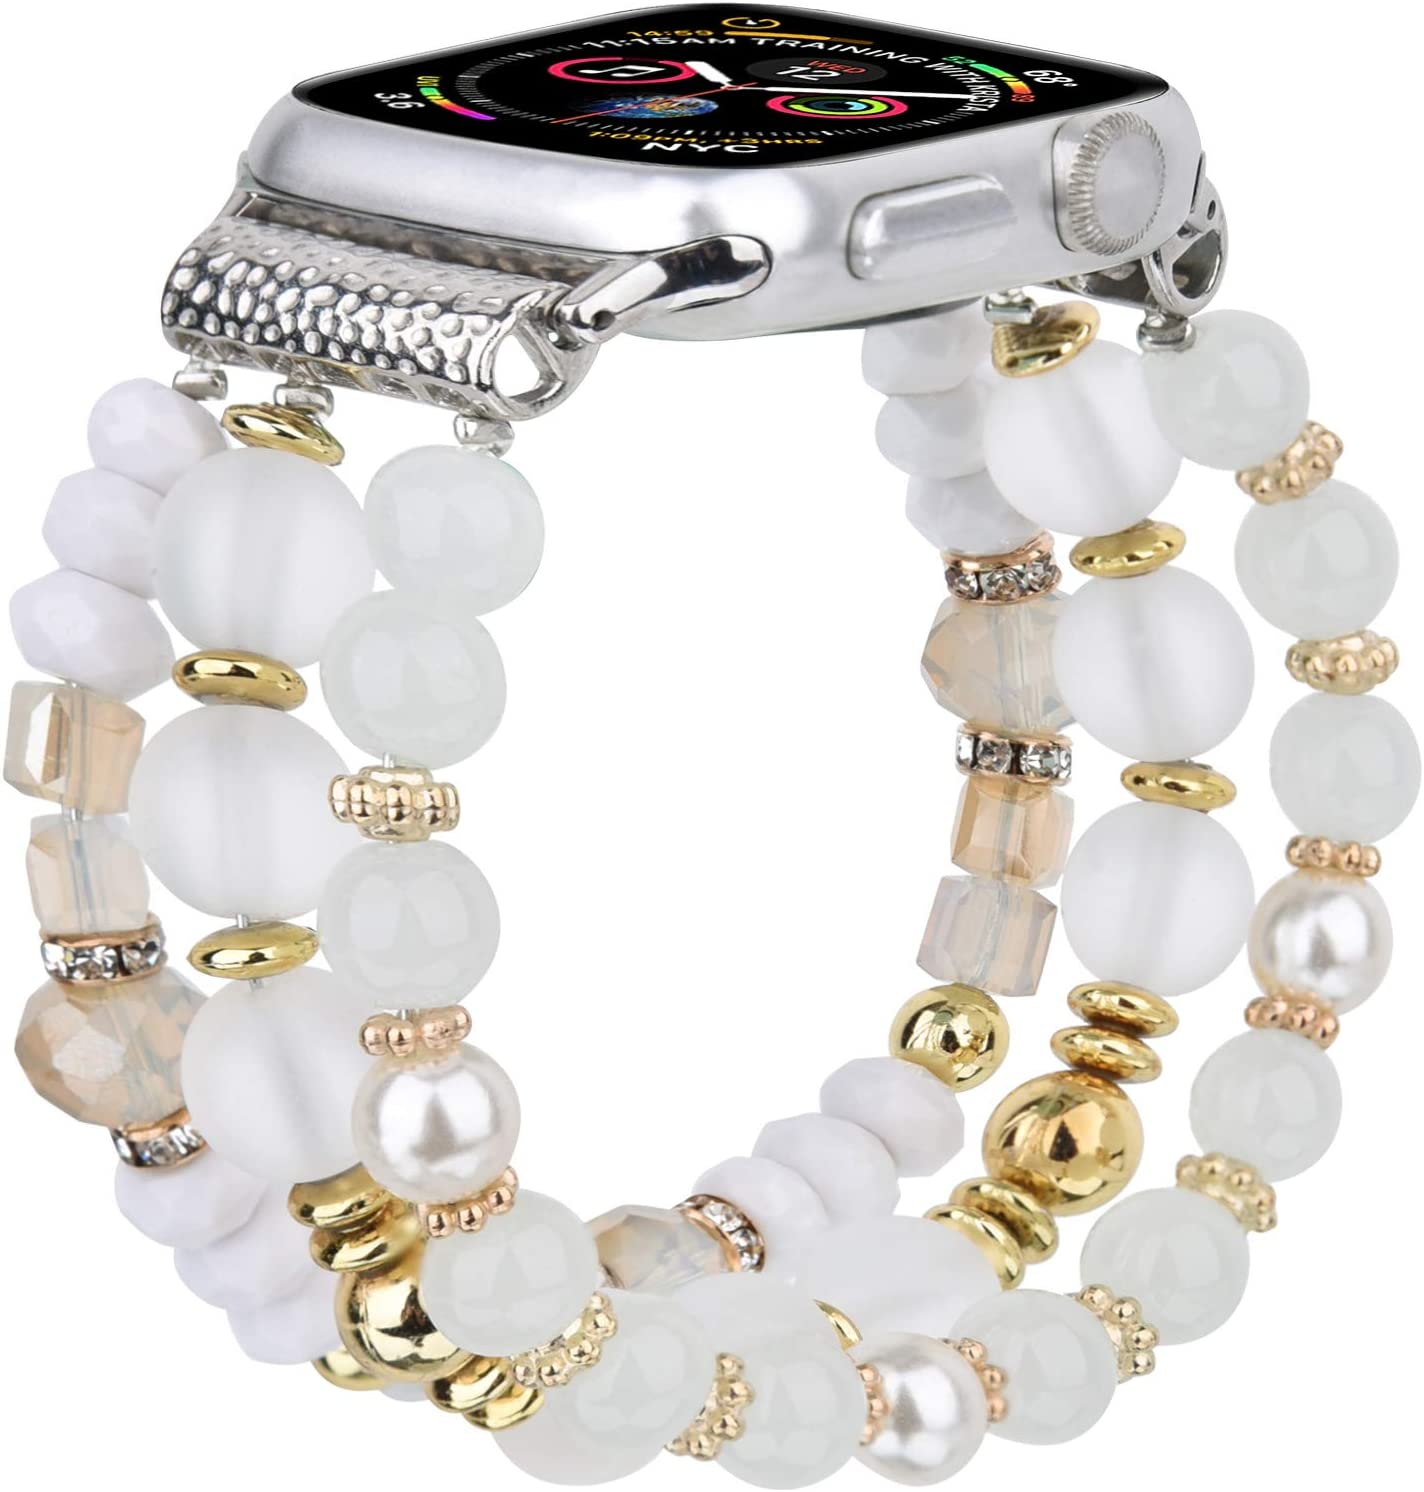 TOROTOP Bracelet Compatible with 44mm Apple Watch Band 42mm Series 5 6 Women Girl, Cute Handmade Fashion Elastic Beaded Strap Replacement Compatible for iWatch Series 6/5/ 4/3/2/1 (Matte white)